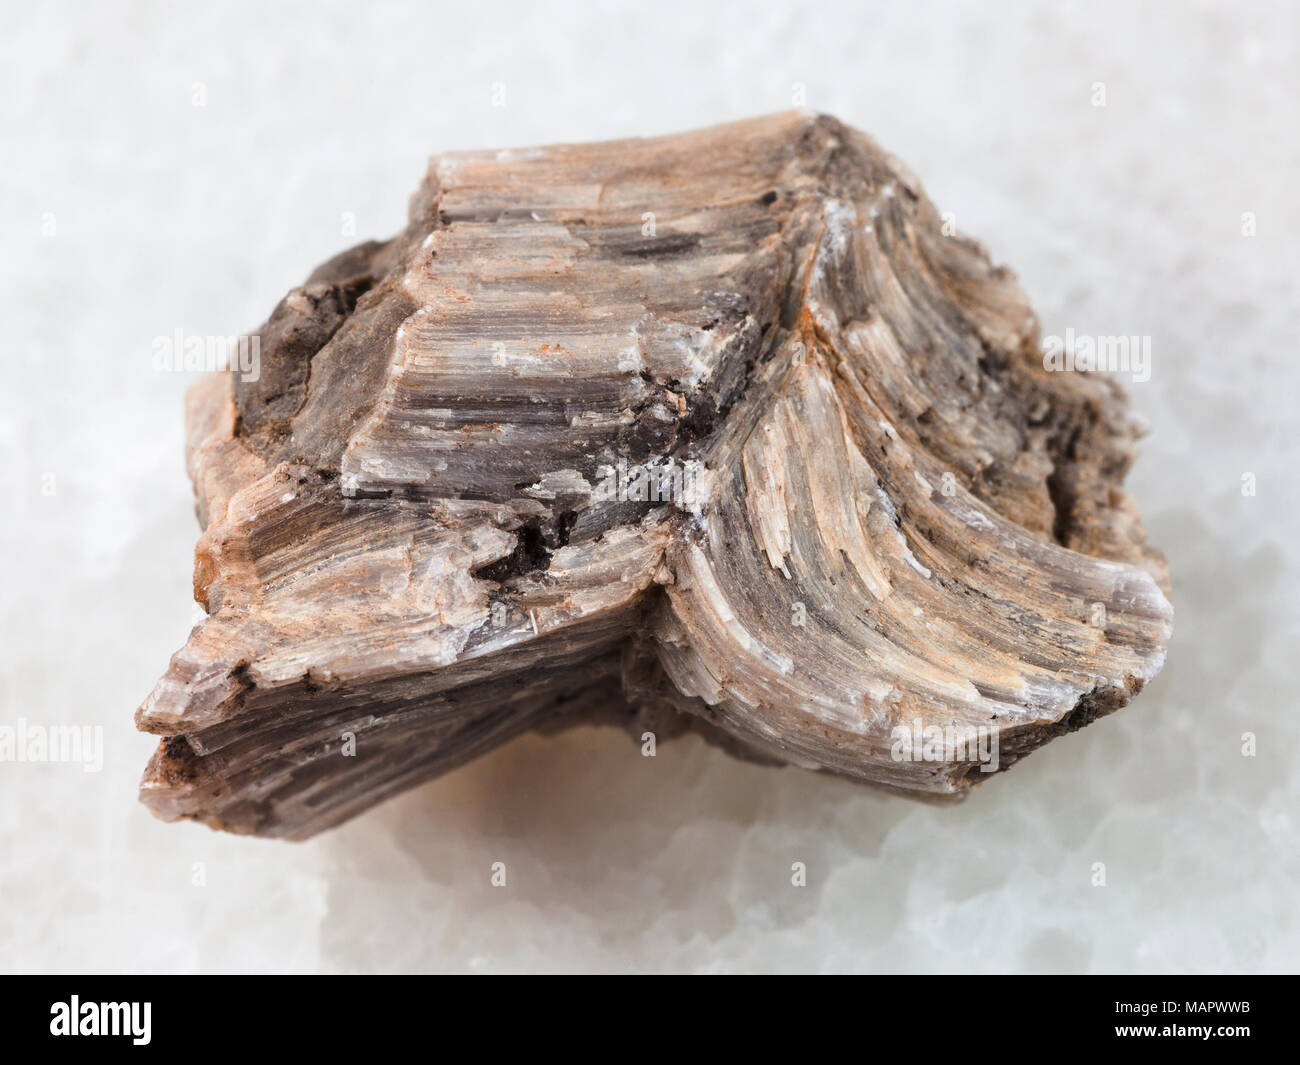 macro shooting of natural mineral rock specimen - raw baryte stone on white marble background from Irkutsk region, Russia - Stock Image